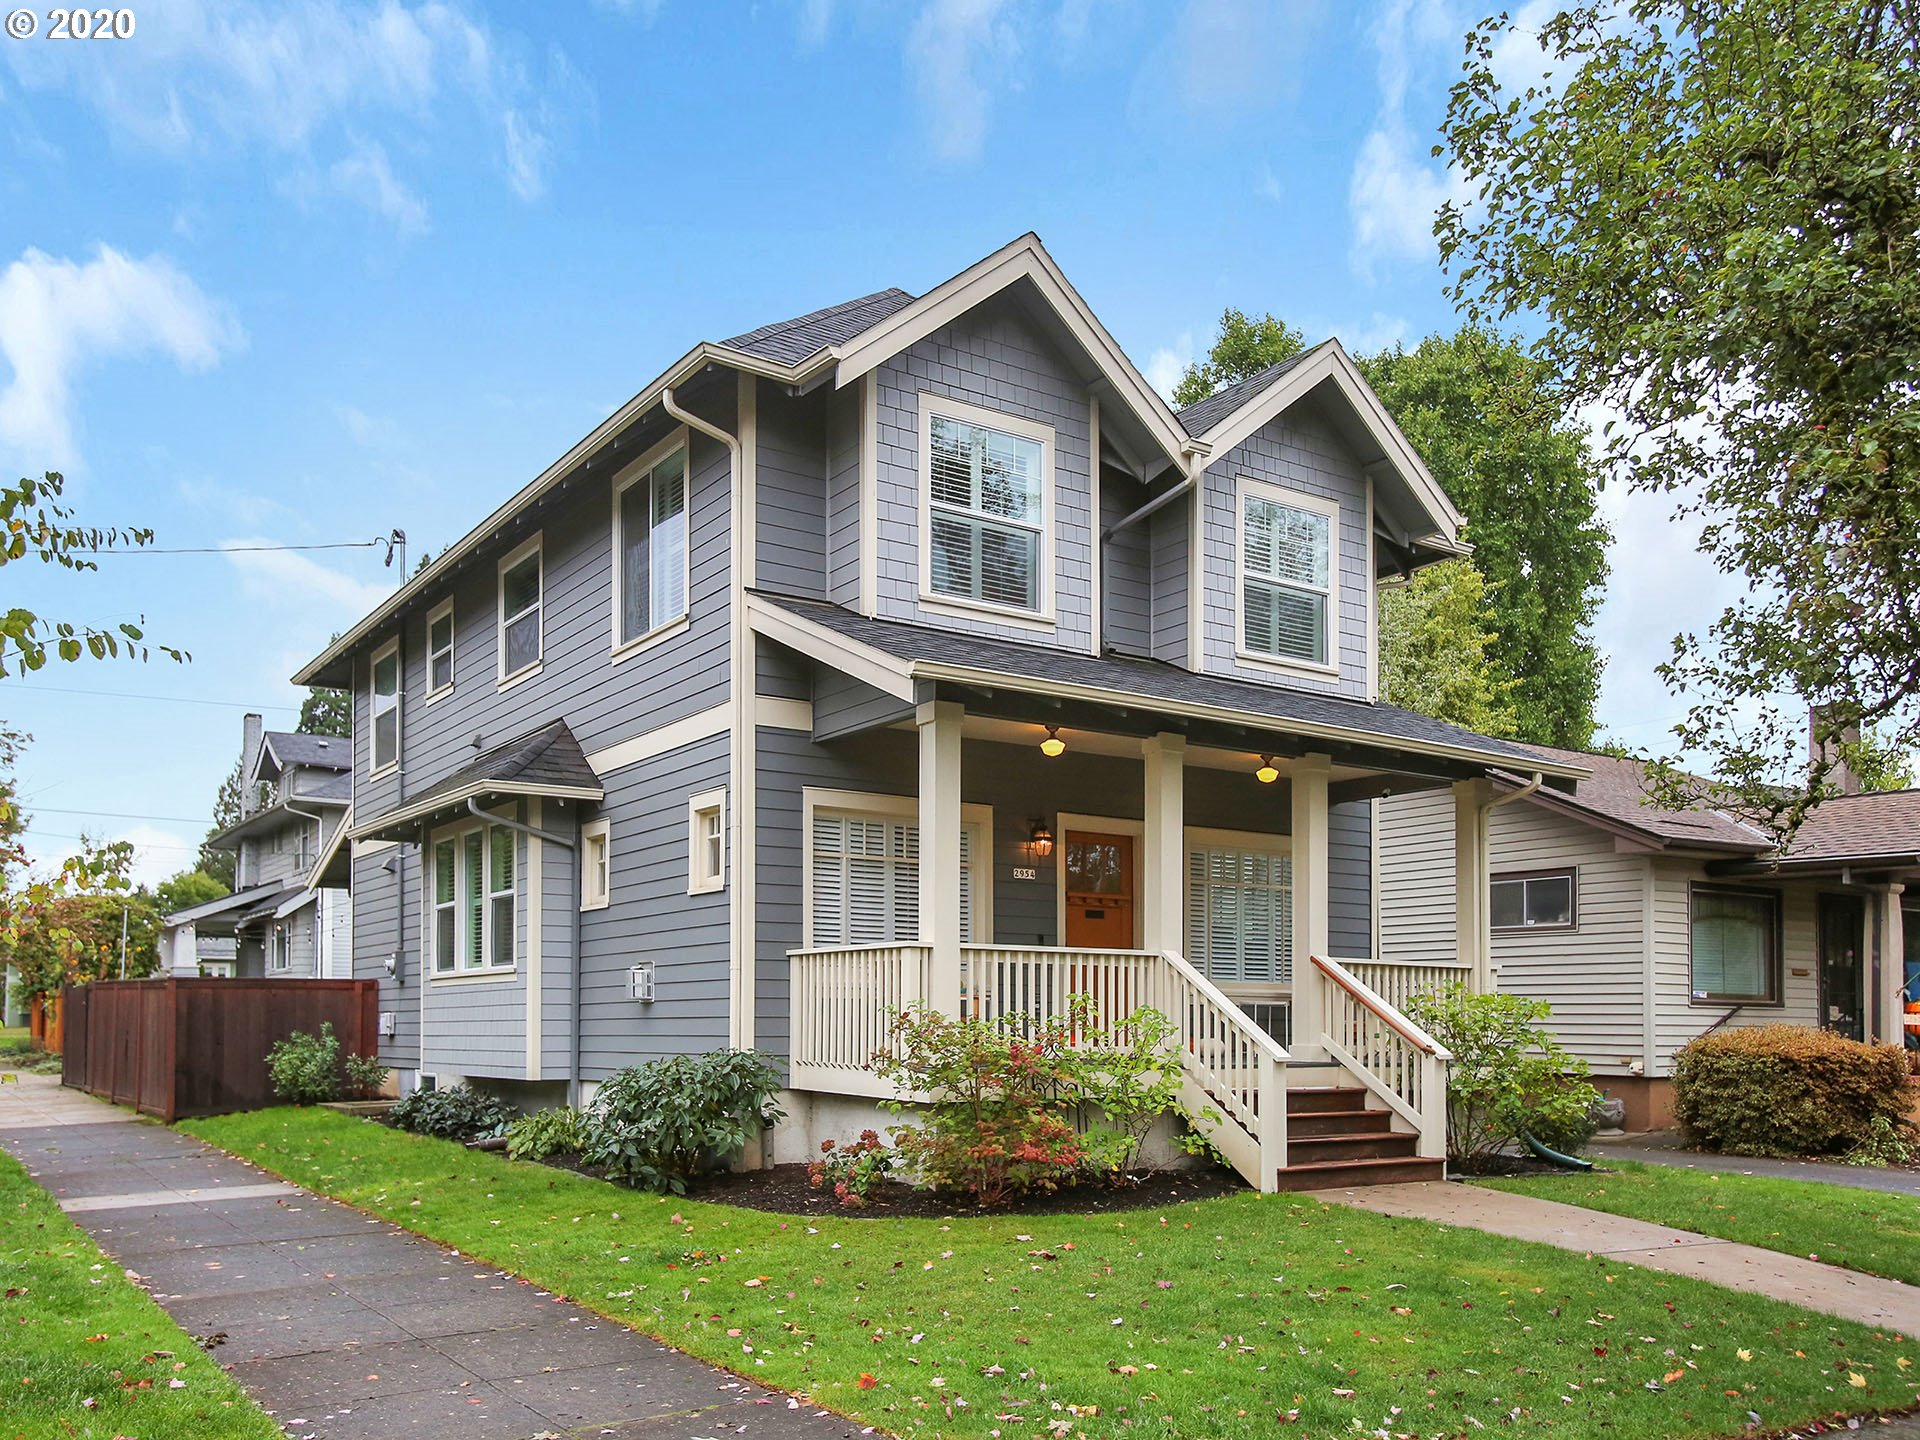 Beautifully rebuilt 4 bedroom, 2.5 bath Grant Park home, featuring an open concept main living, dining, family room, & gourmet kitchen w/ eat-in island.  Upstairs, 3 beds, laundry,  & two full baths, including the prime bedroom with tile & glass en suite & walk-in closet. Covered patio plumbed for gas heaters & large enough to enjoy a year-round social distance. Ultra energy efficient, great schools, nearby park, & proximity to shopping & amenities. See offer deadline. [Home Energy Score = 8. HES Report at https://rpt.greenbuildingregistry.com/hes/OR10187379]